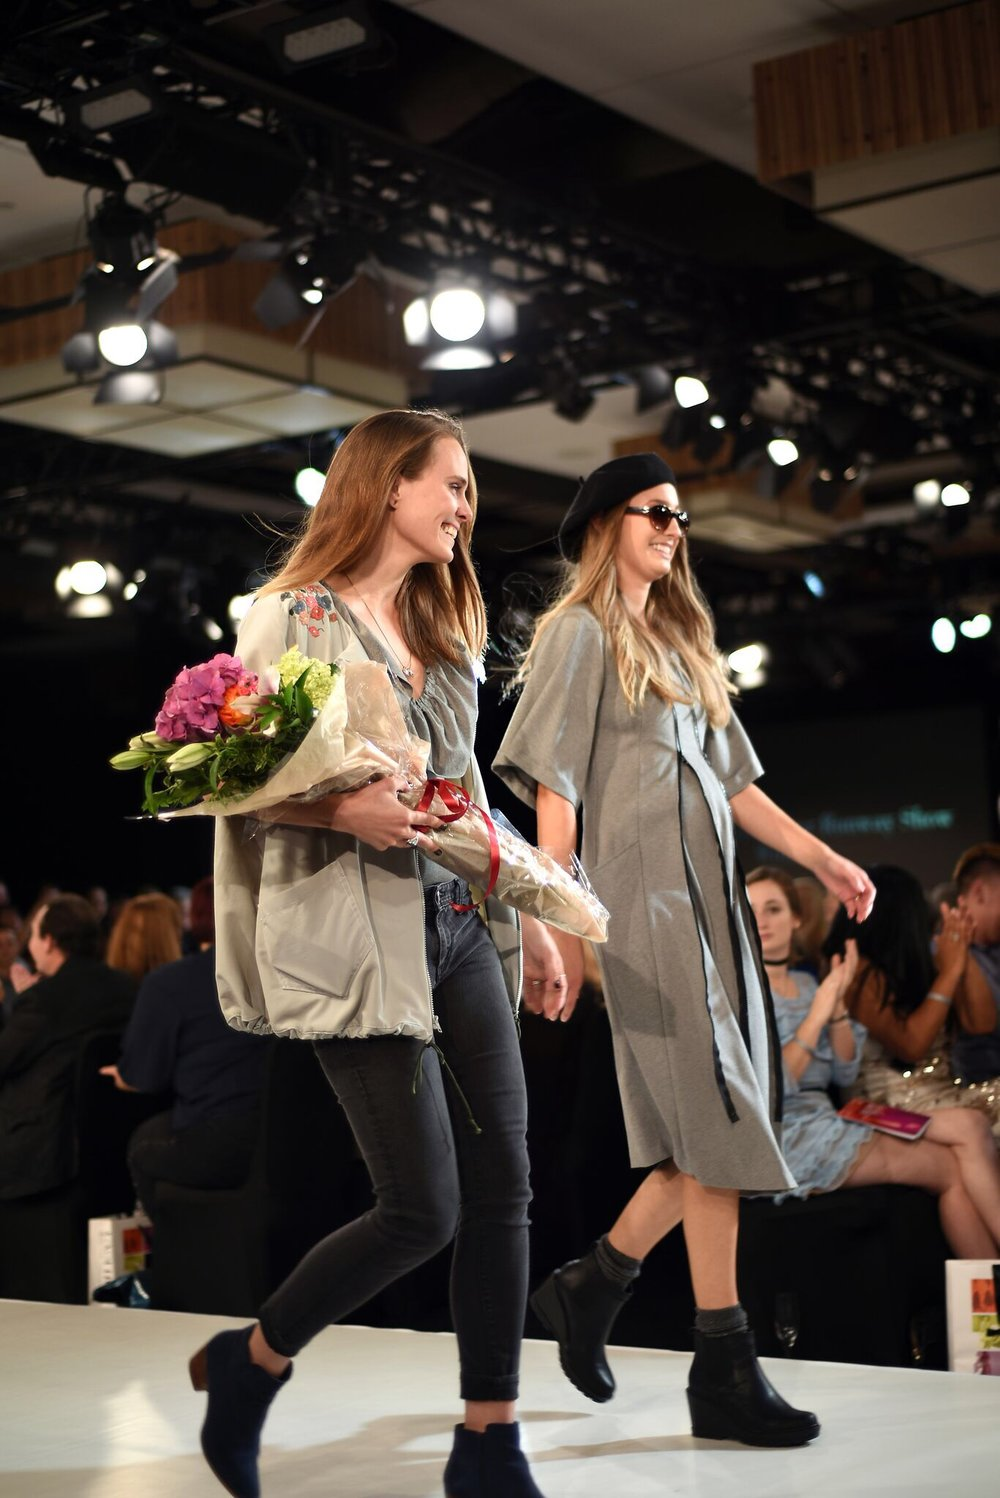 Victory lap at Bellevue Fashion Week. Image courtesy of Elenna Loredana